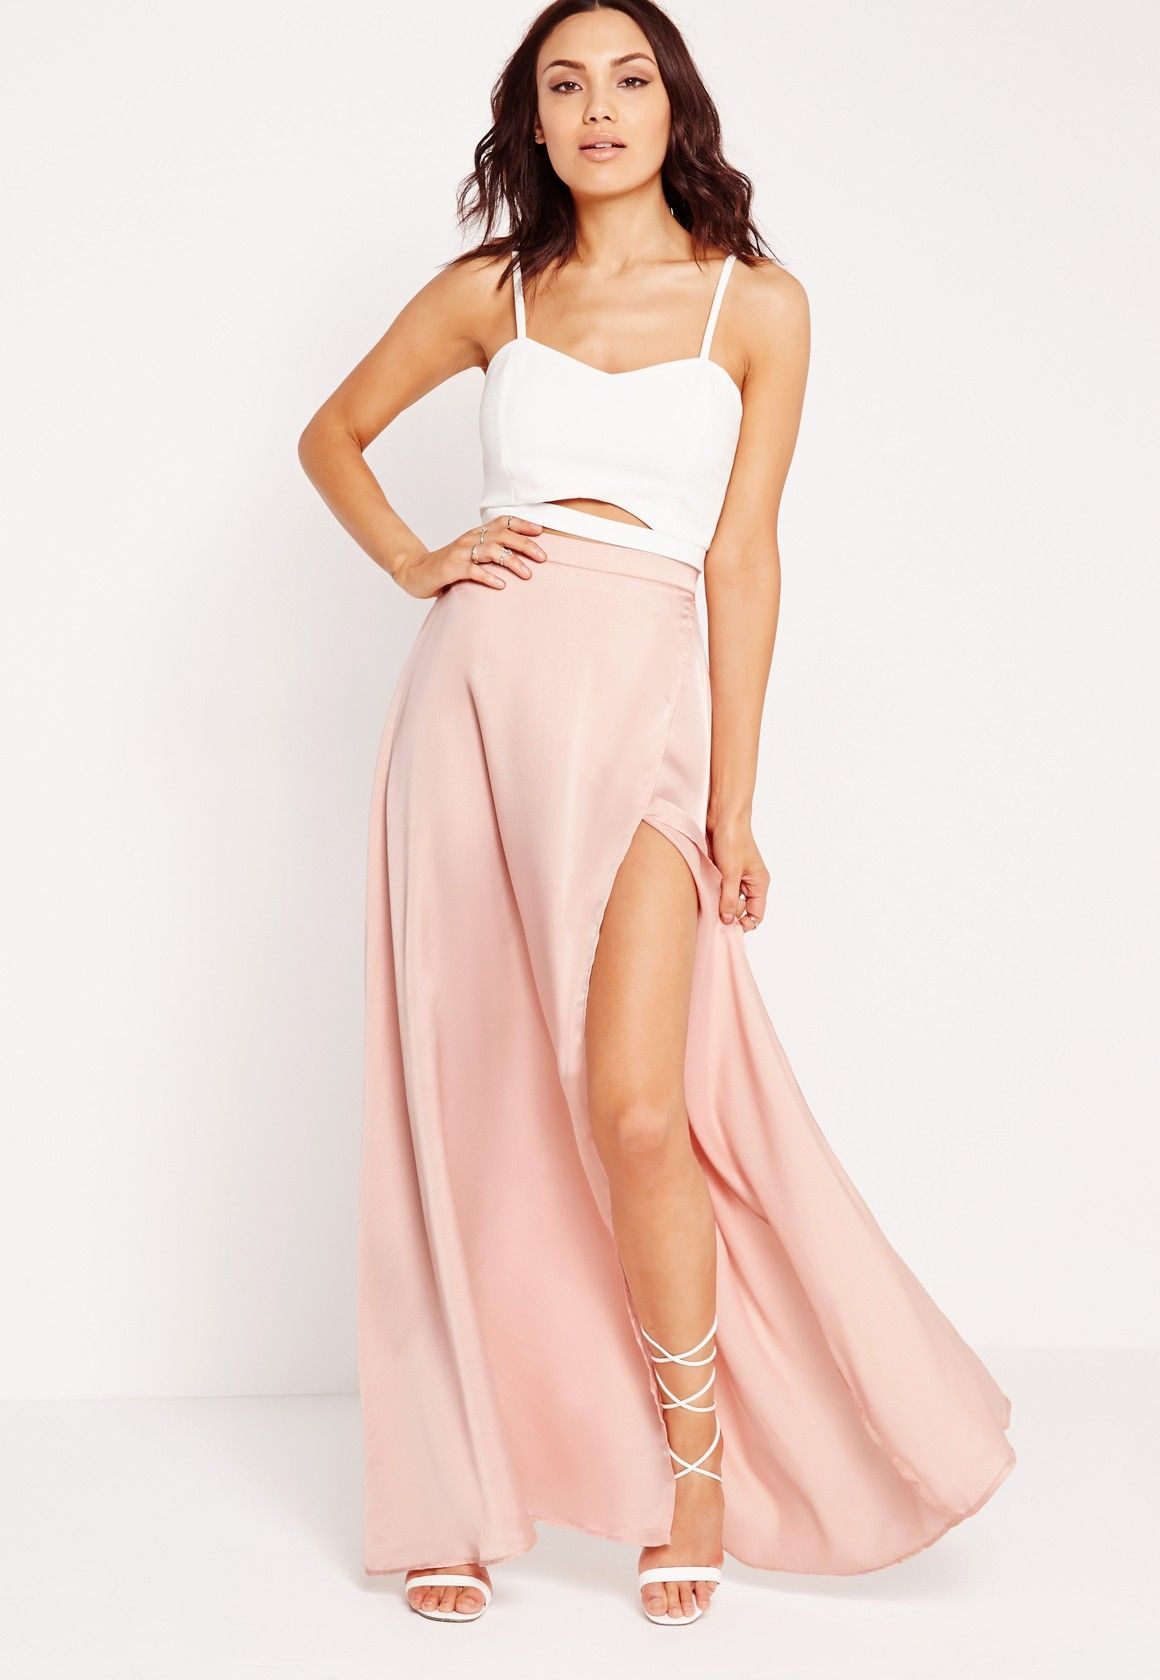 0ffdbfb22a9 Missguided - Satin Wrap Maxi Skirt Pink